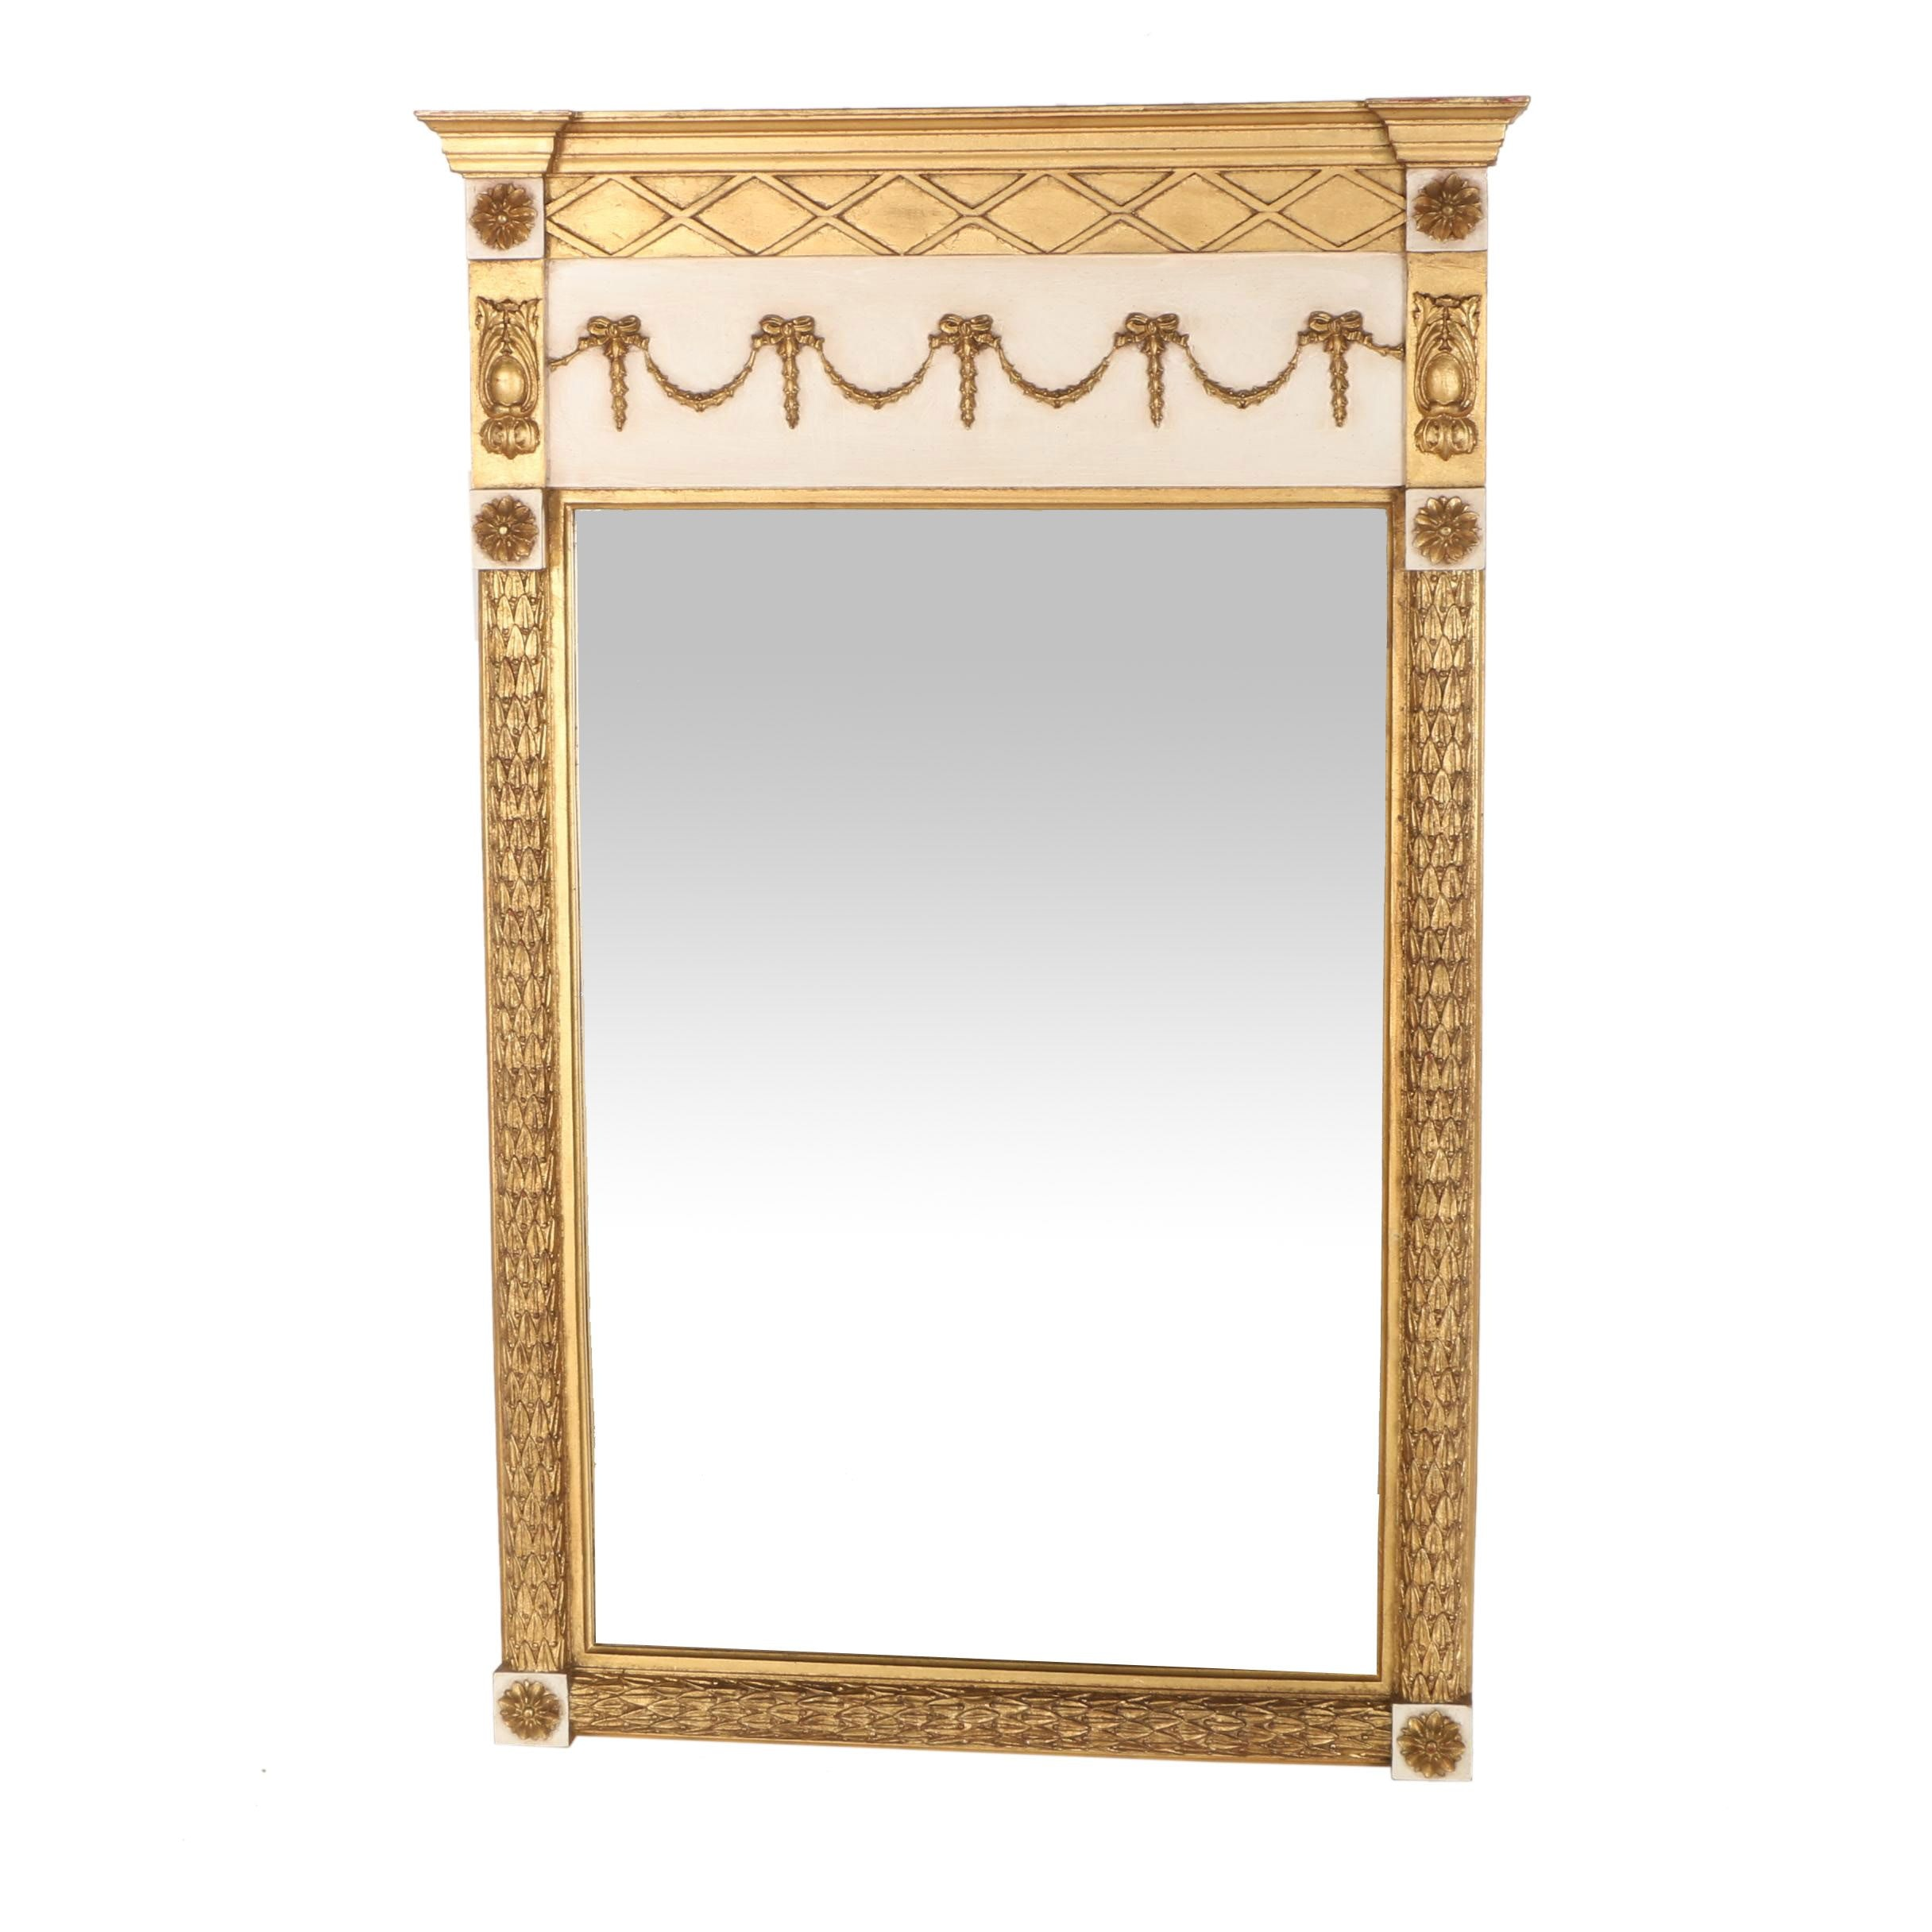 Gilded Wooden Wall Mirror